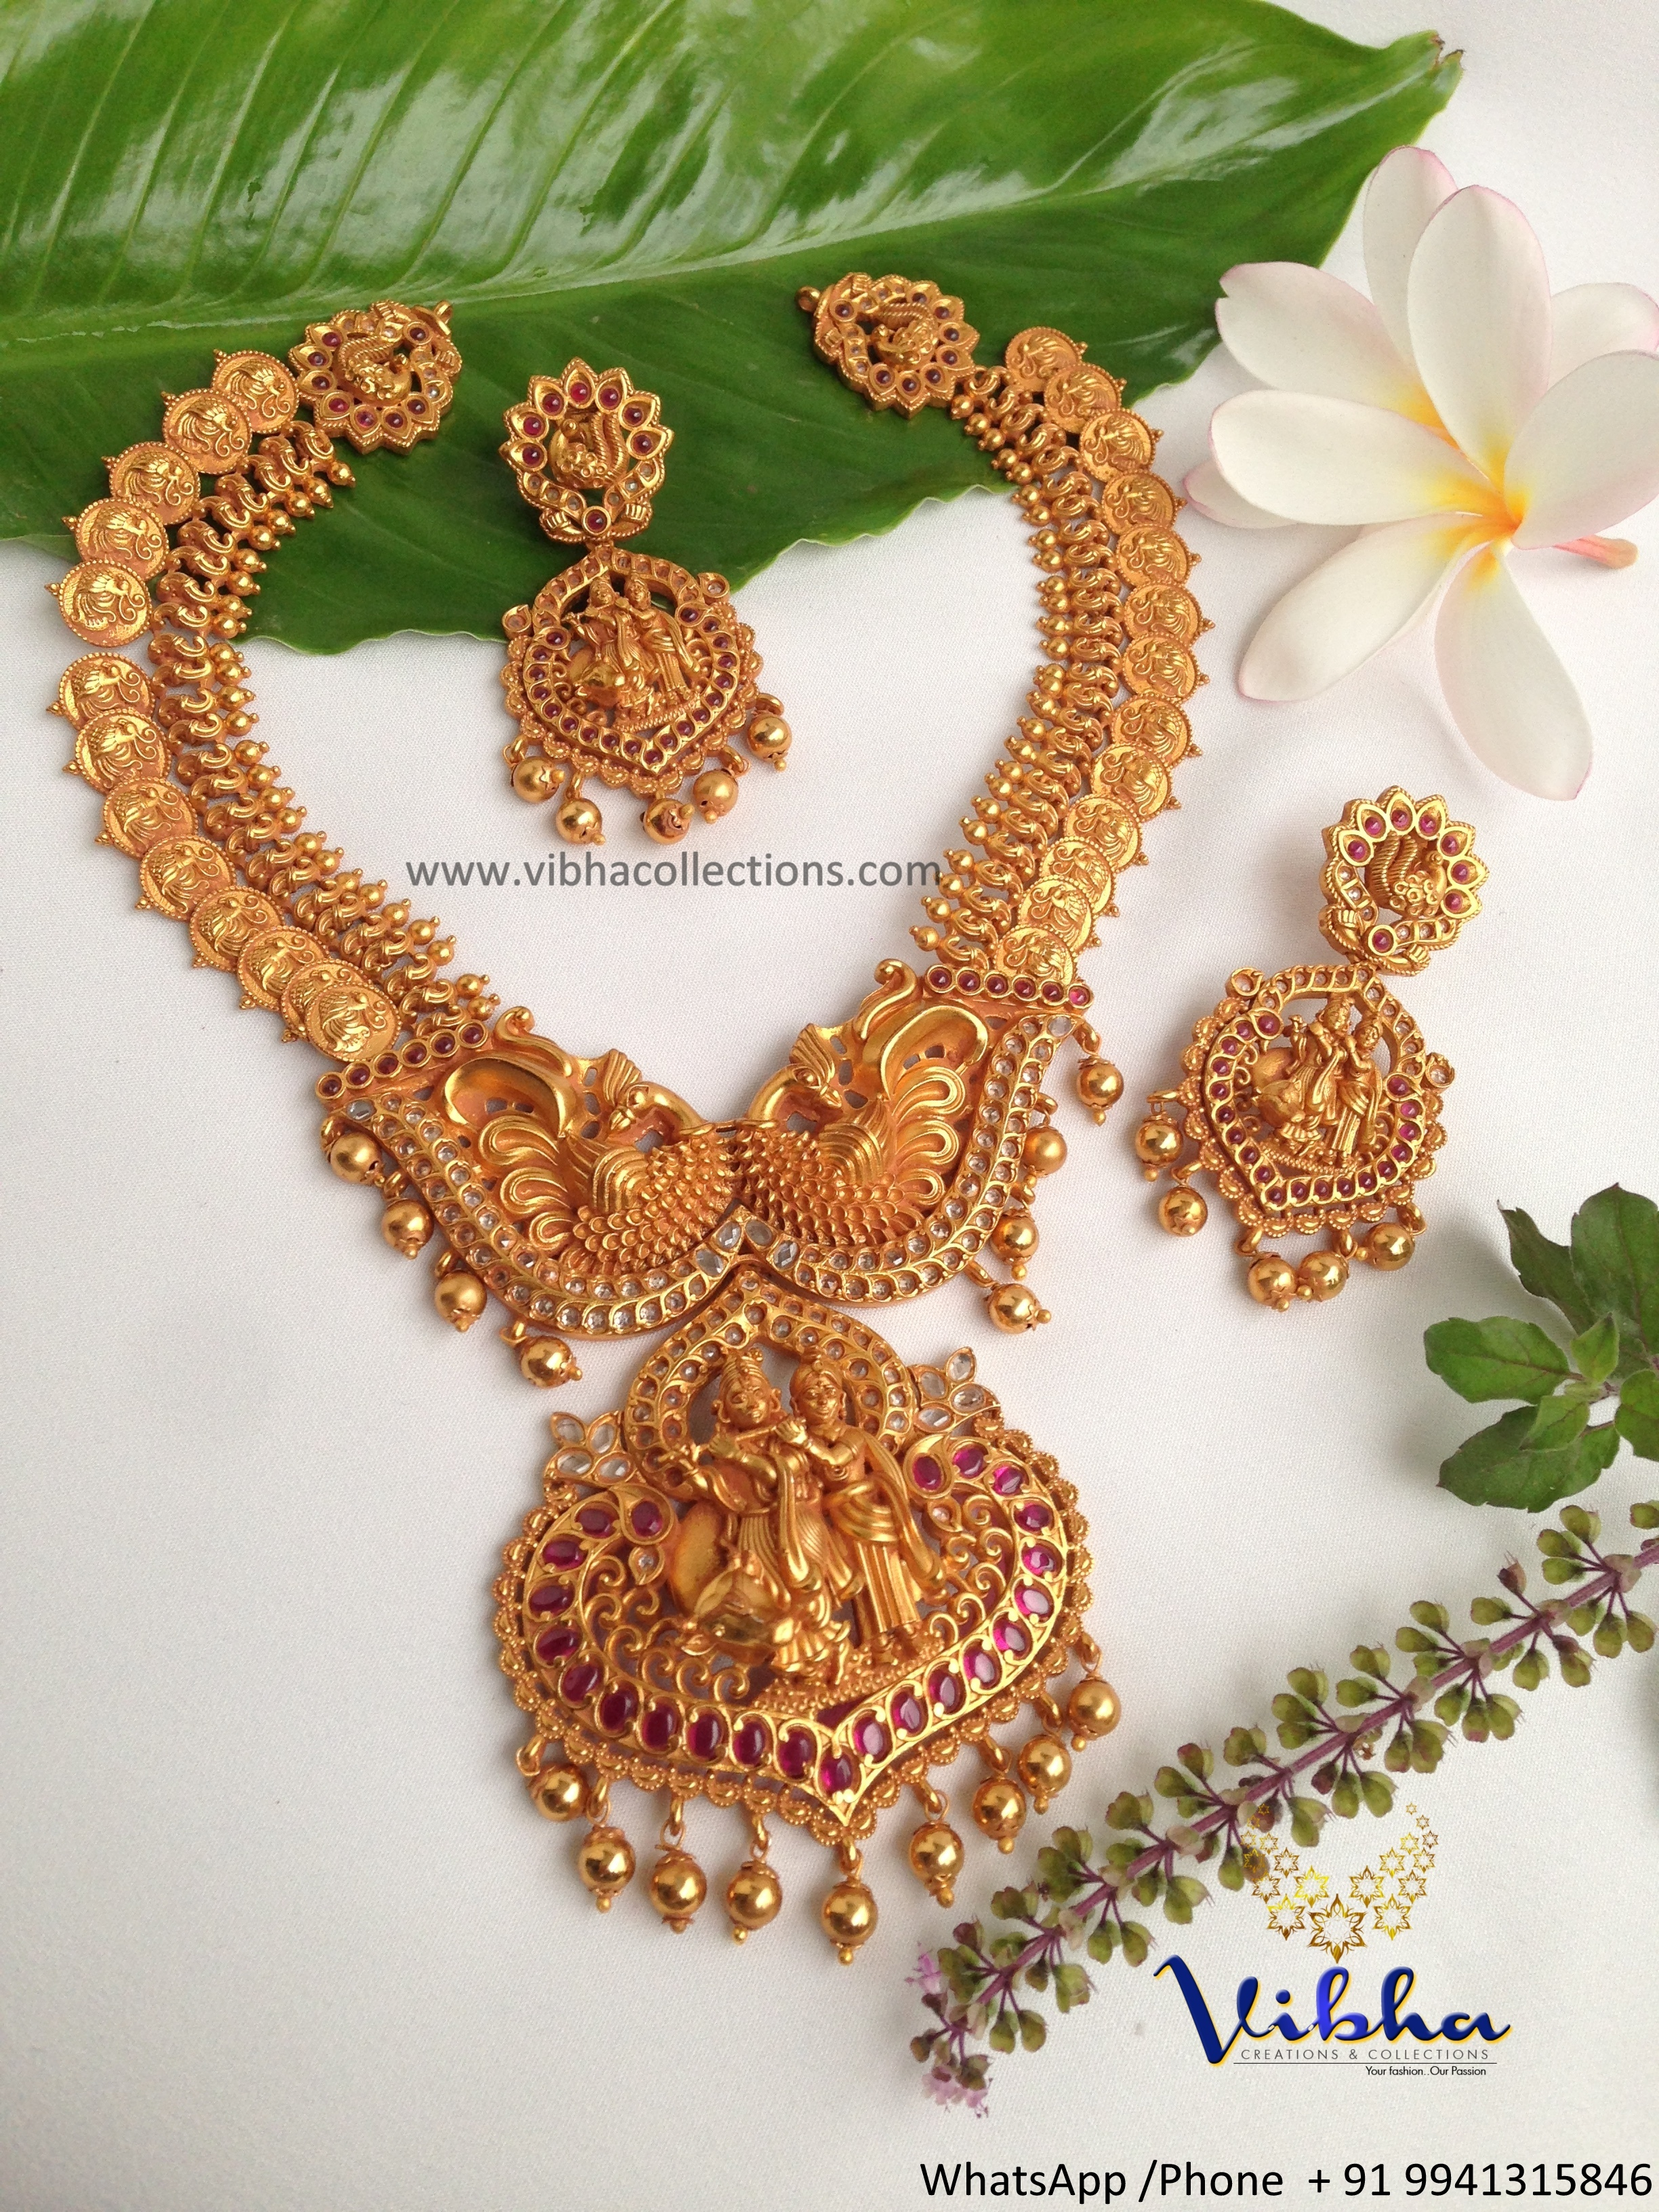 Stunning Temple Necklace Set from Vibha Creations